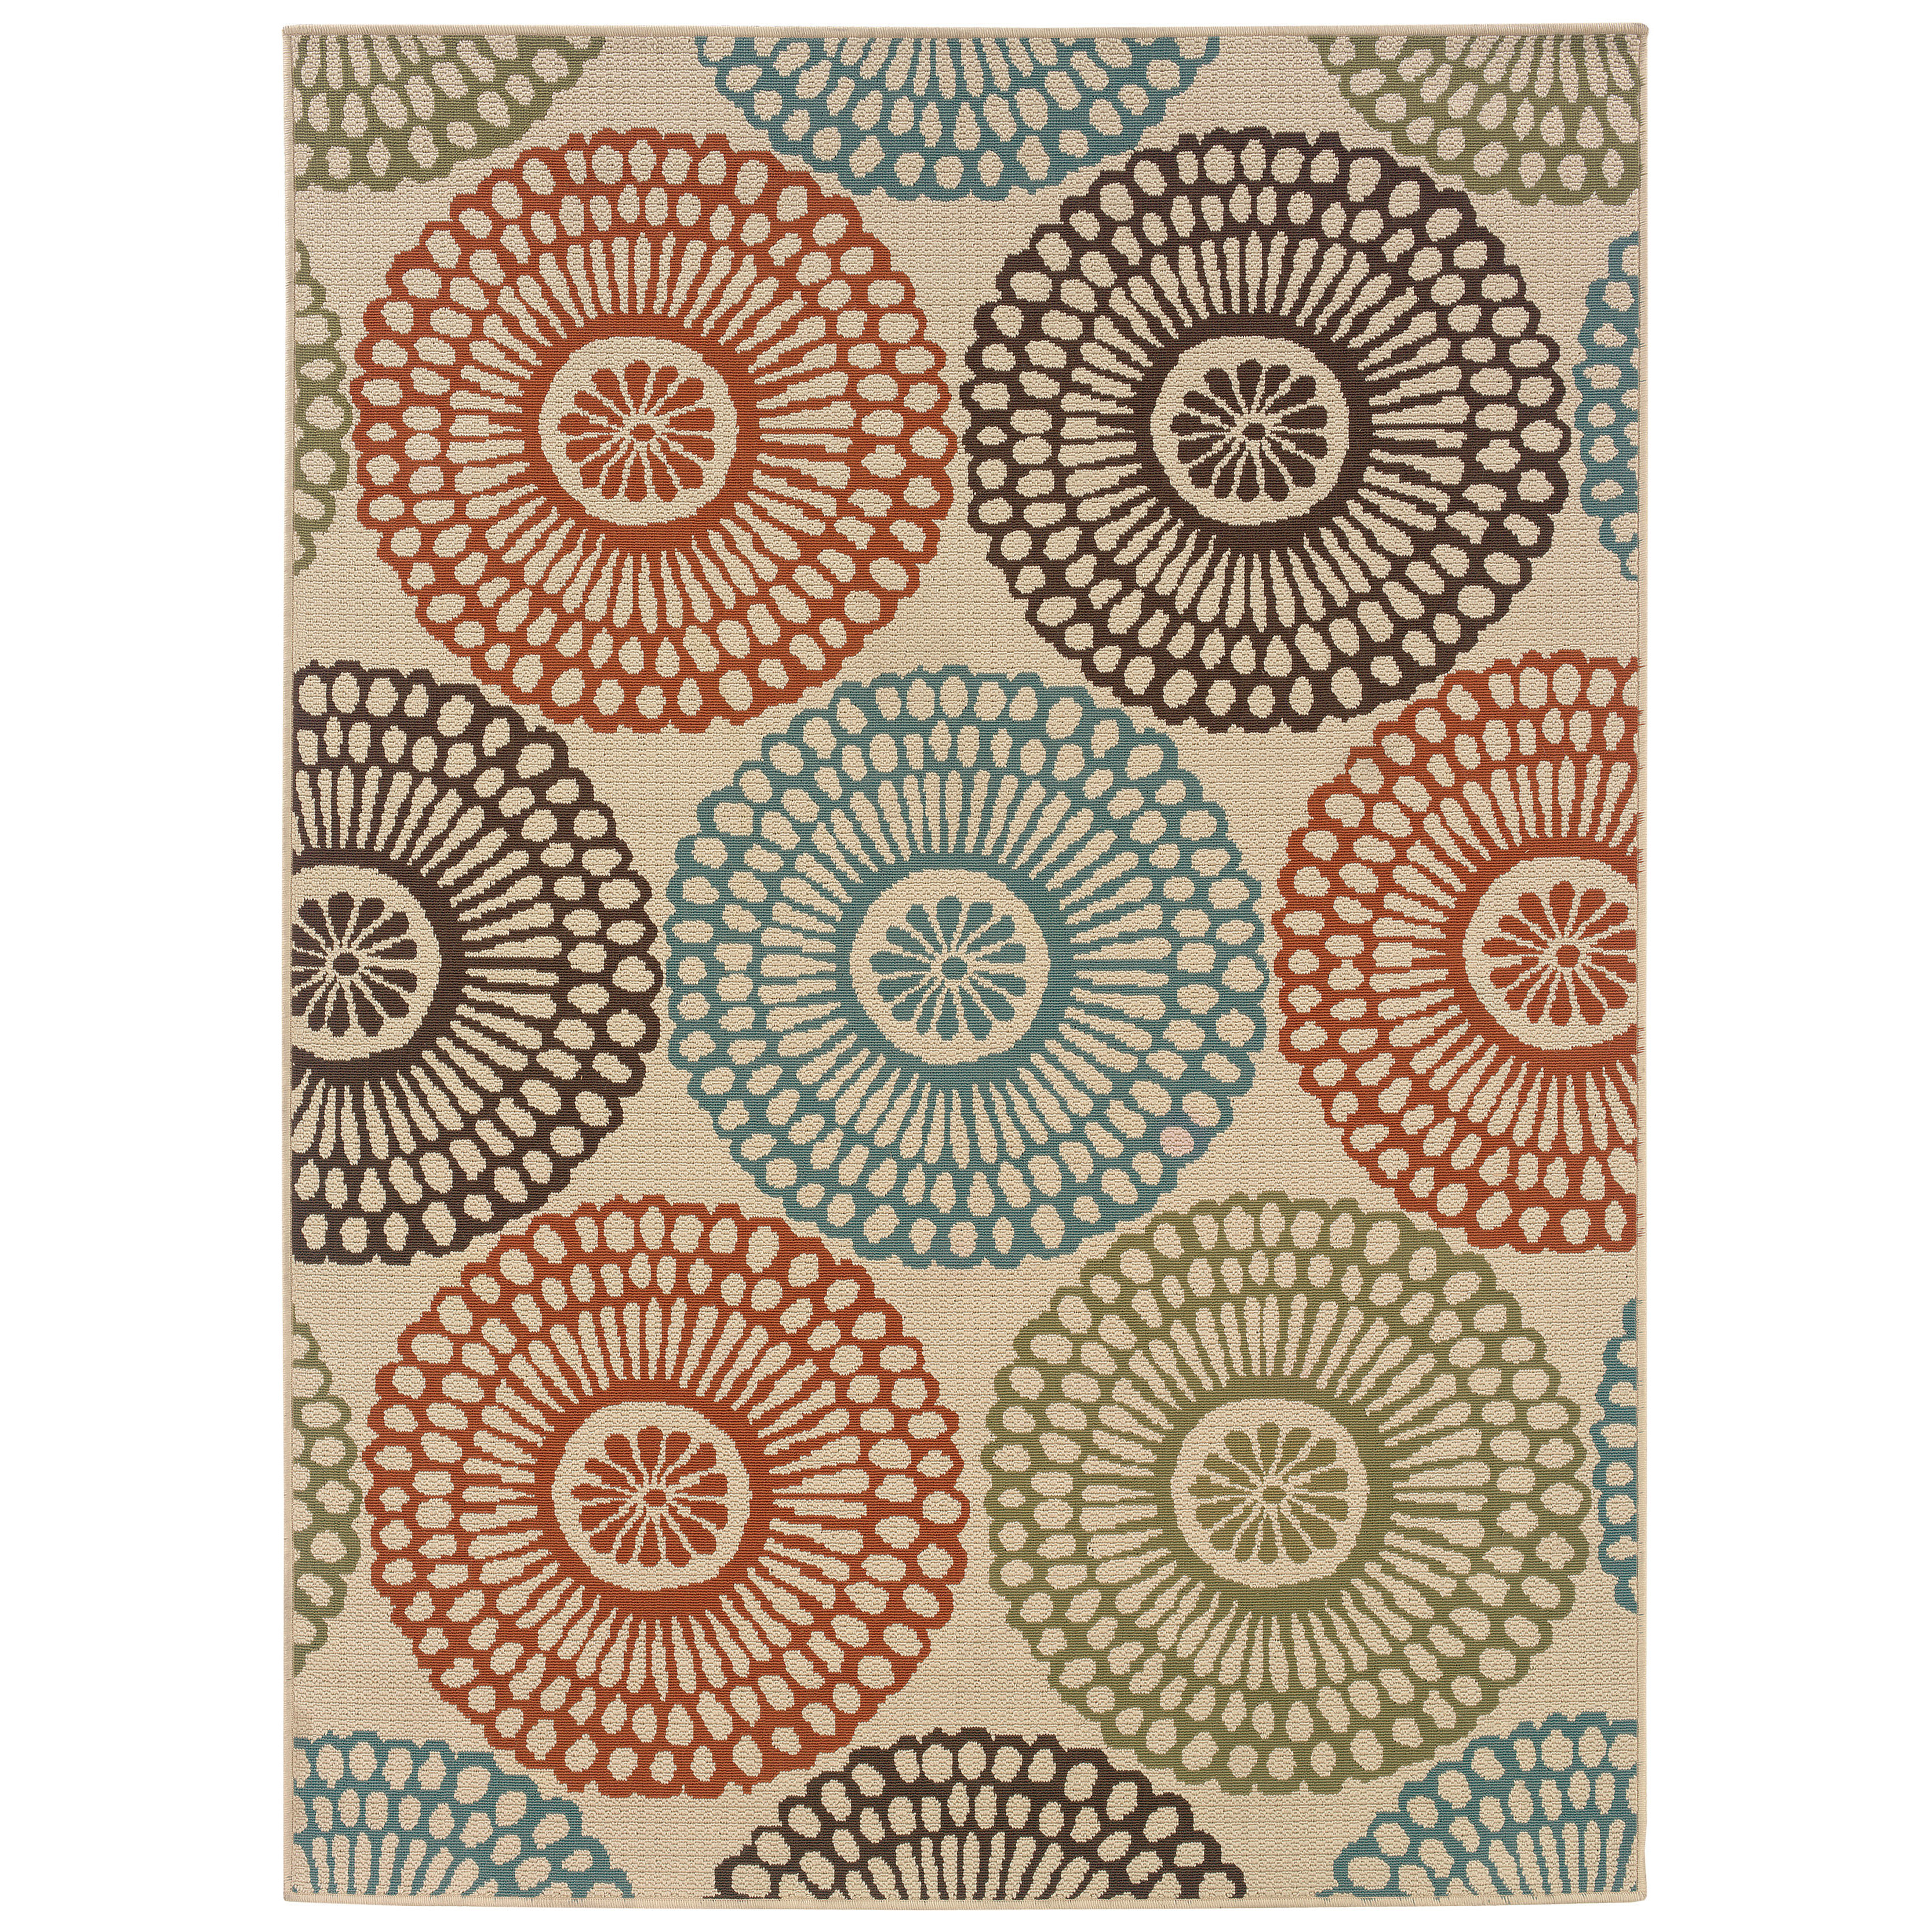 Best ideas about Outdoor Area Rugs . Save or Pin Bungalow Rose Douane Beige Blue Indoor Outdoor Area Rug Now.